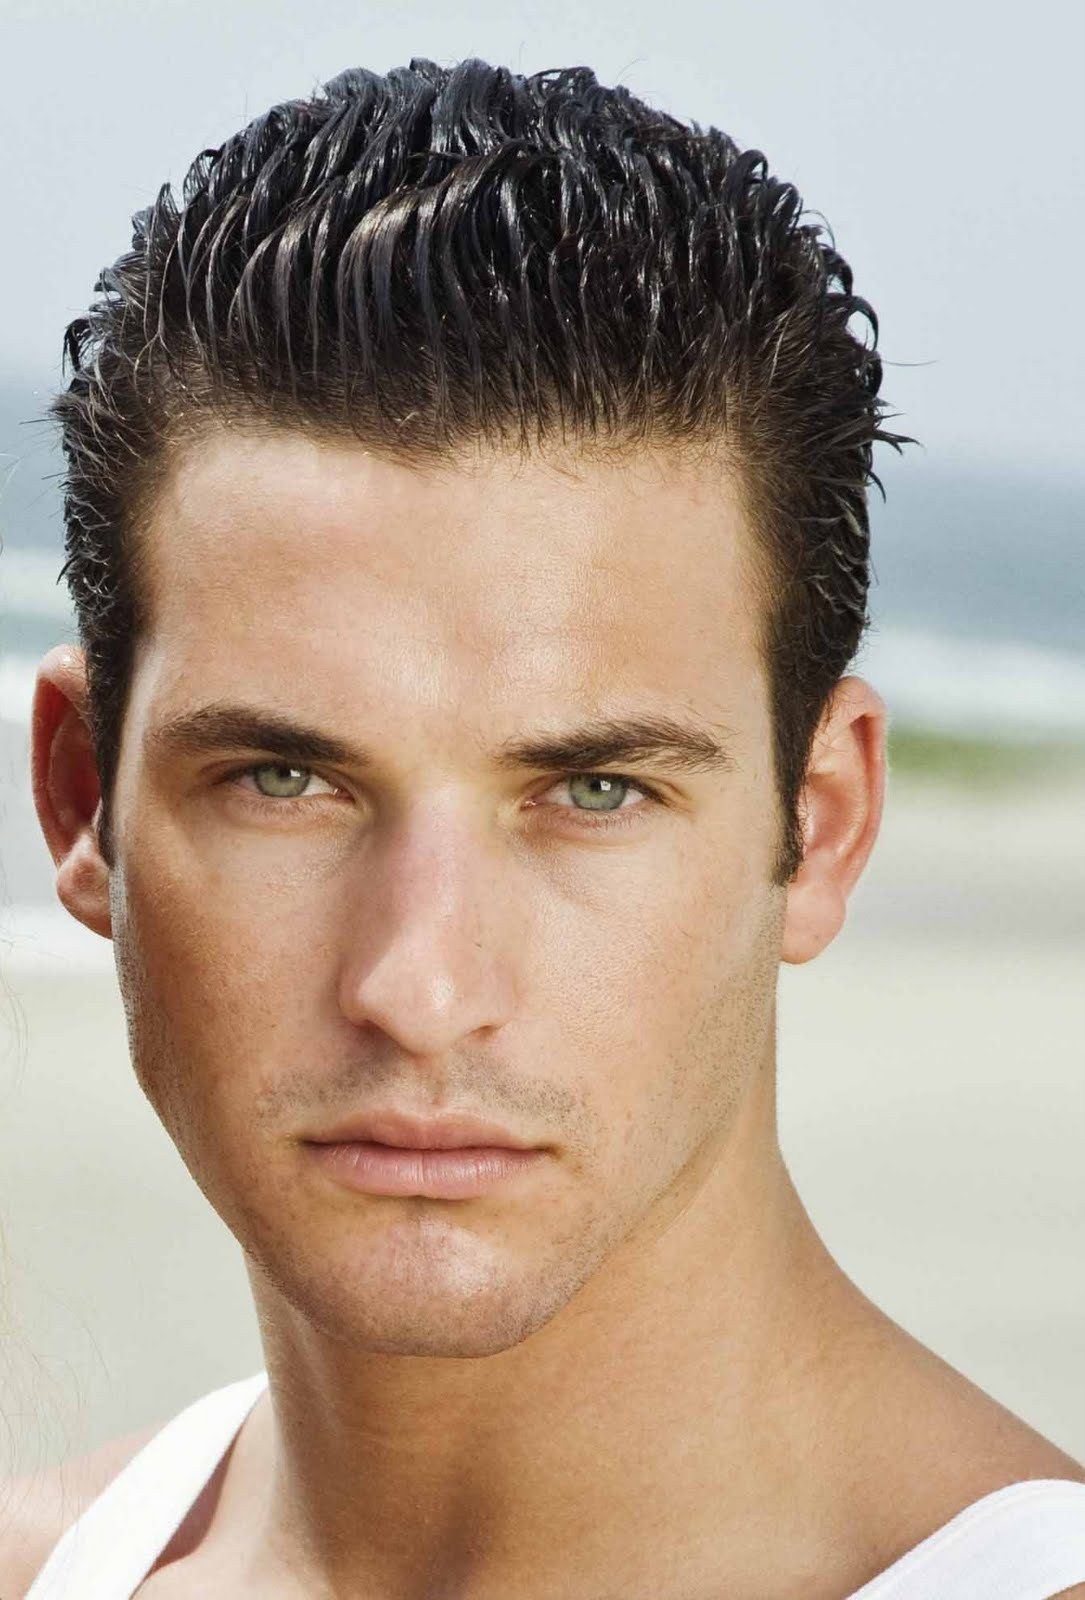 Police haircuts for men mythic beauty  handsome man  pinterest  hot guys and handsome